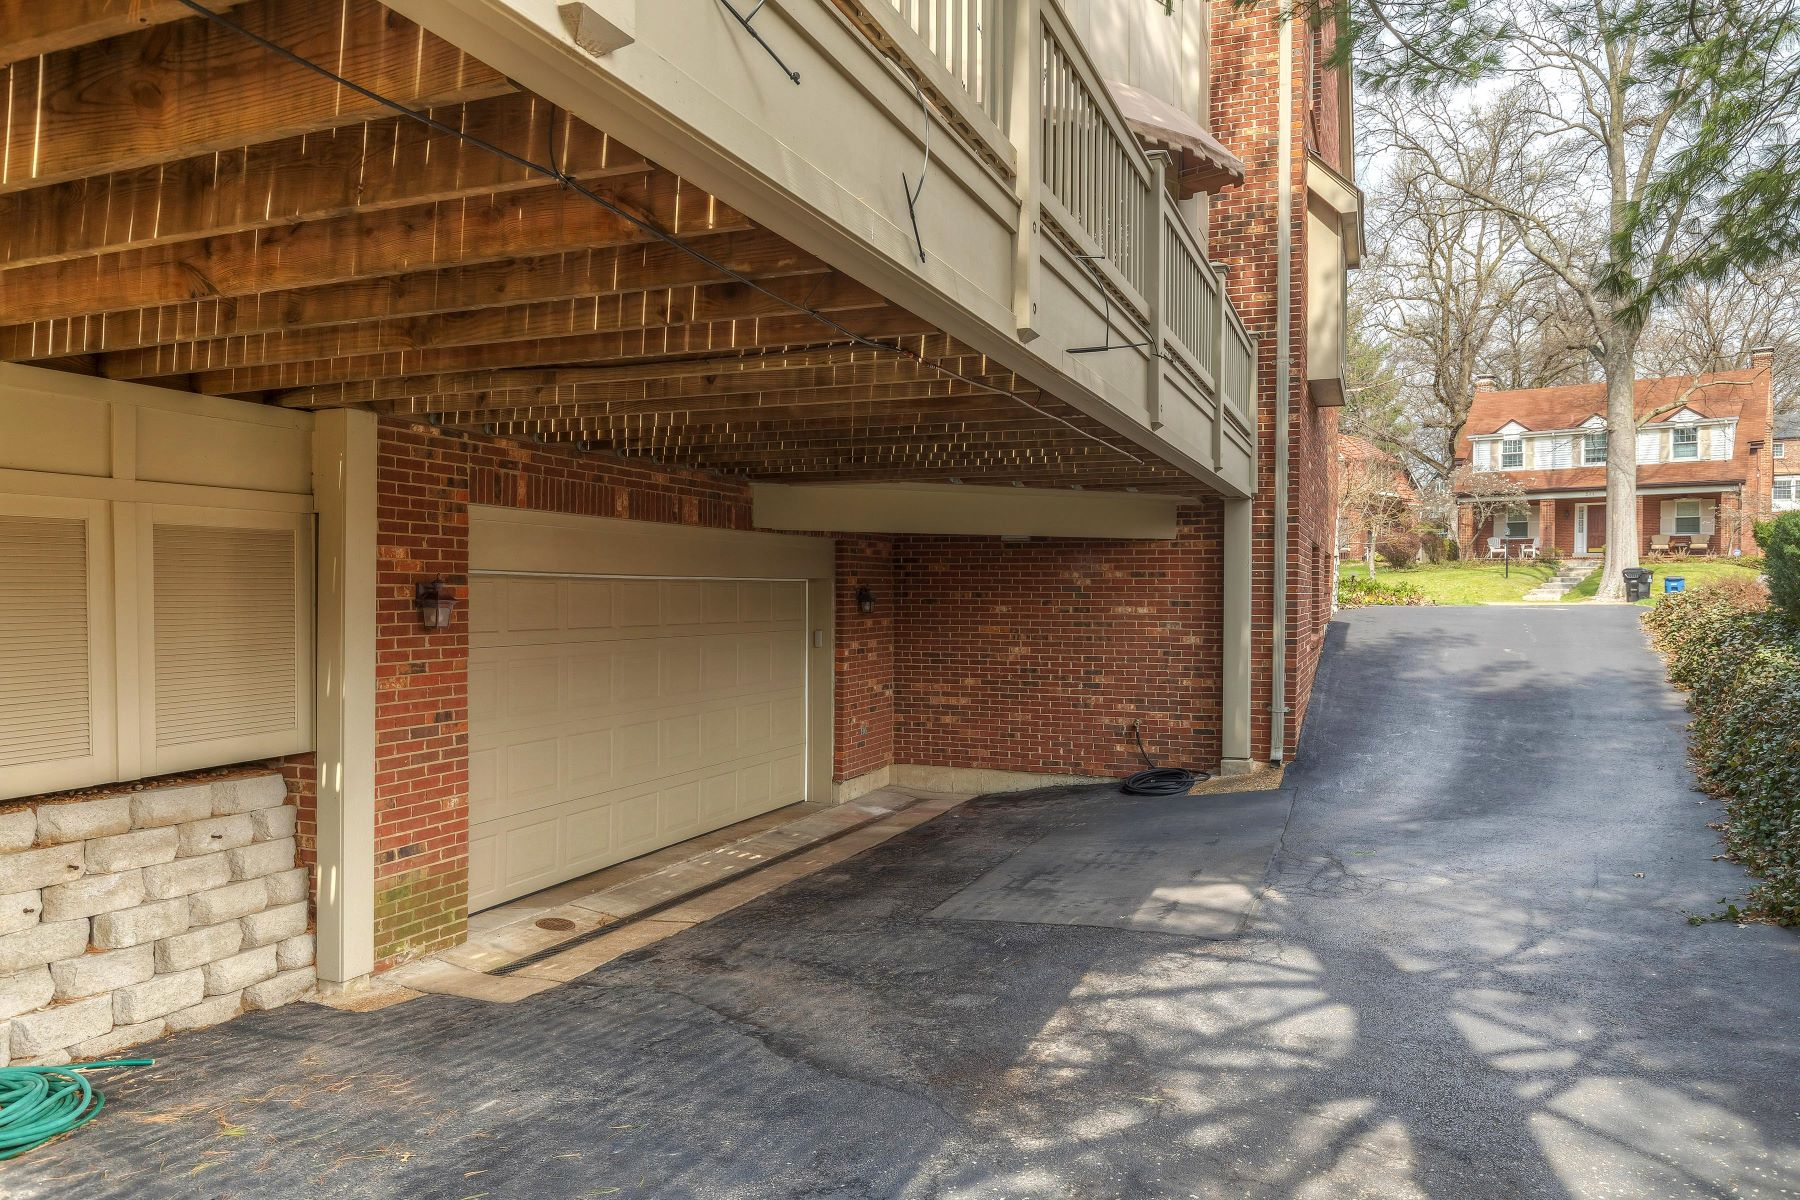 Additional photo for property listing at Condo Alternative in University Hills 508 Purdue Avenue University City, Missouri 63130 United States